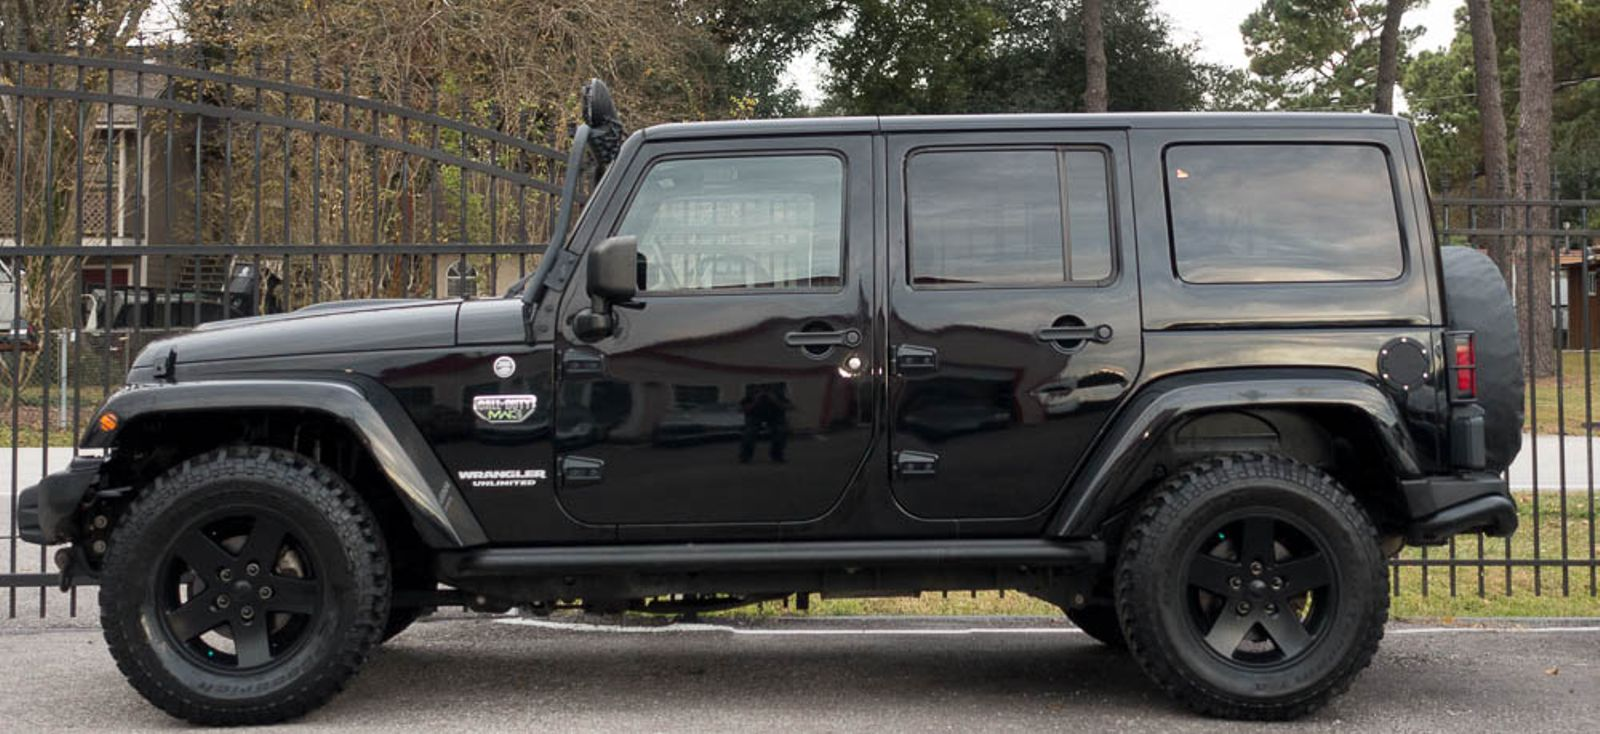 2012 Jeep Wrangler Unlimited Call Of Duty Mw3 Texas Euro 2